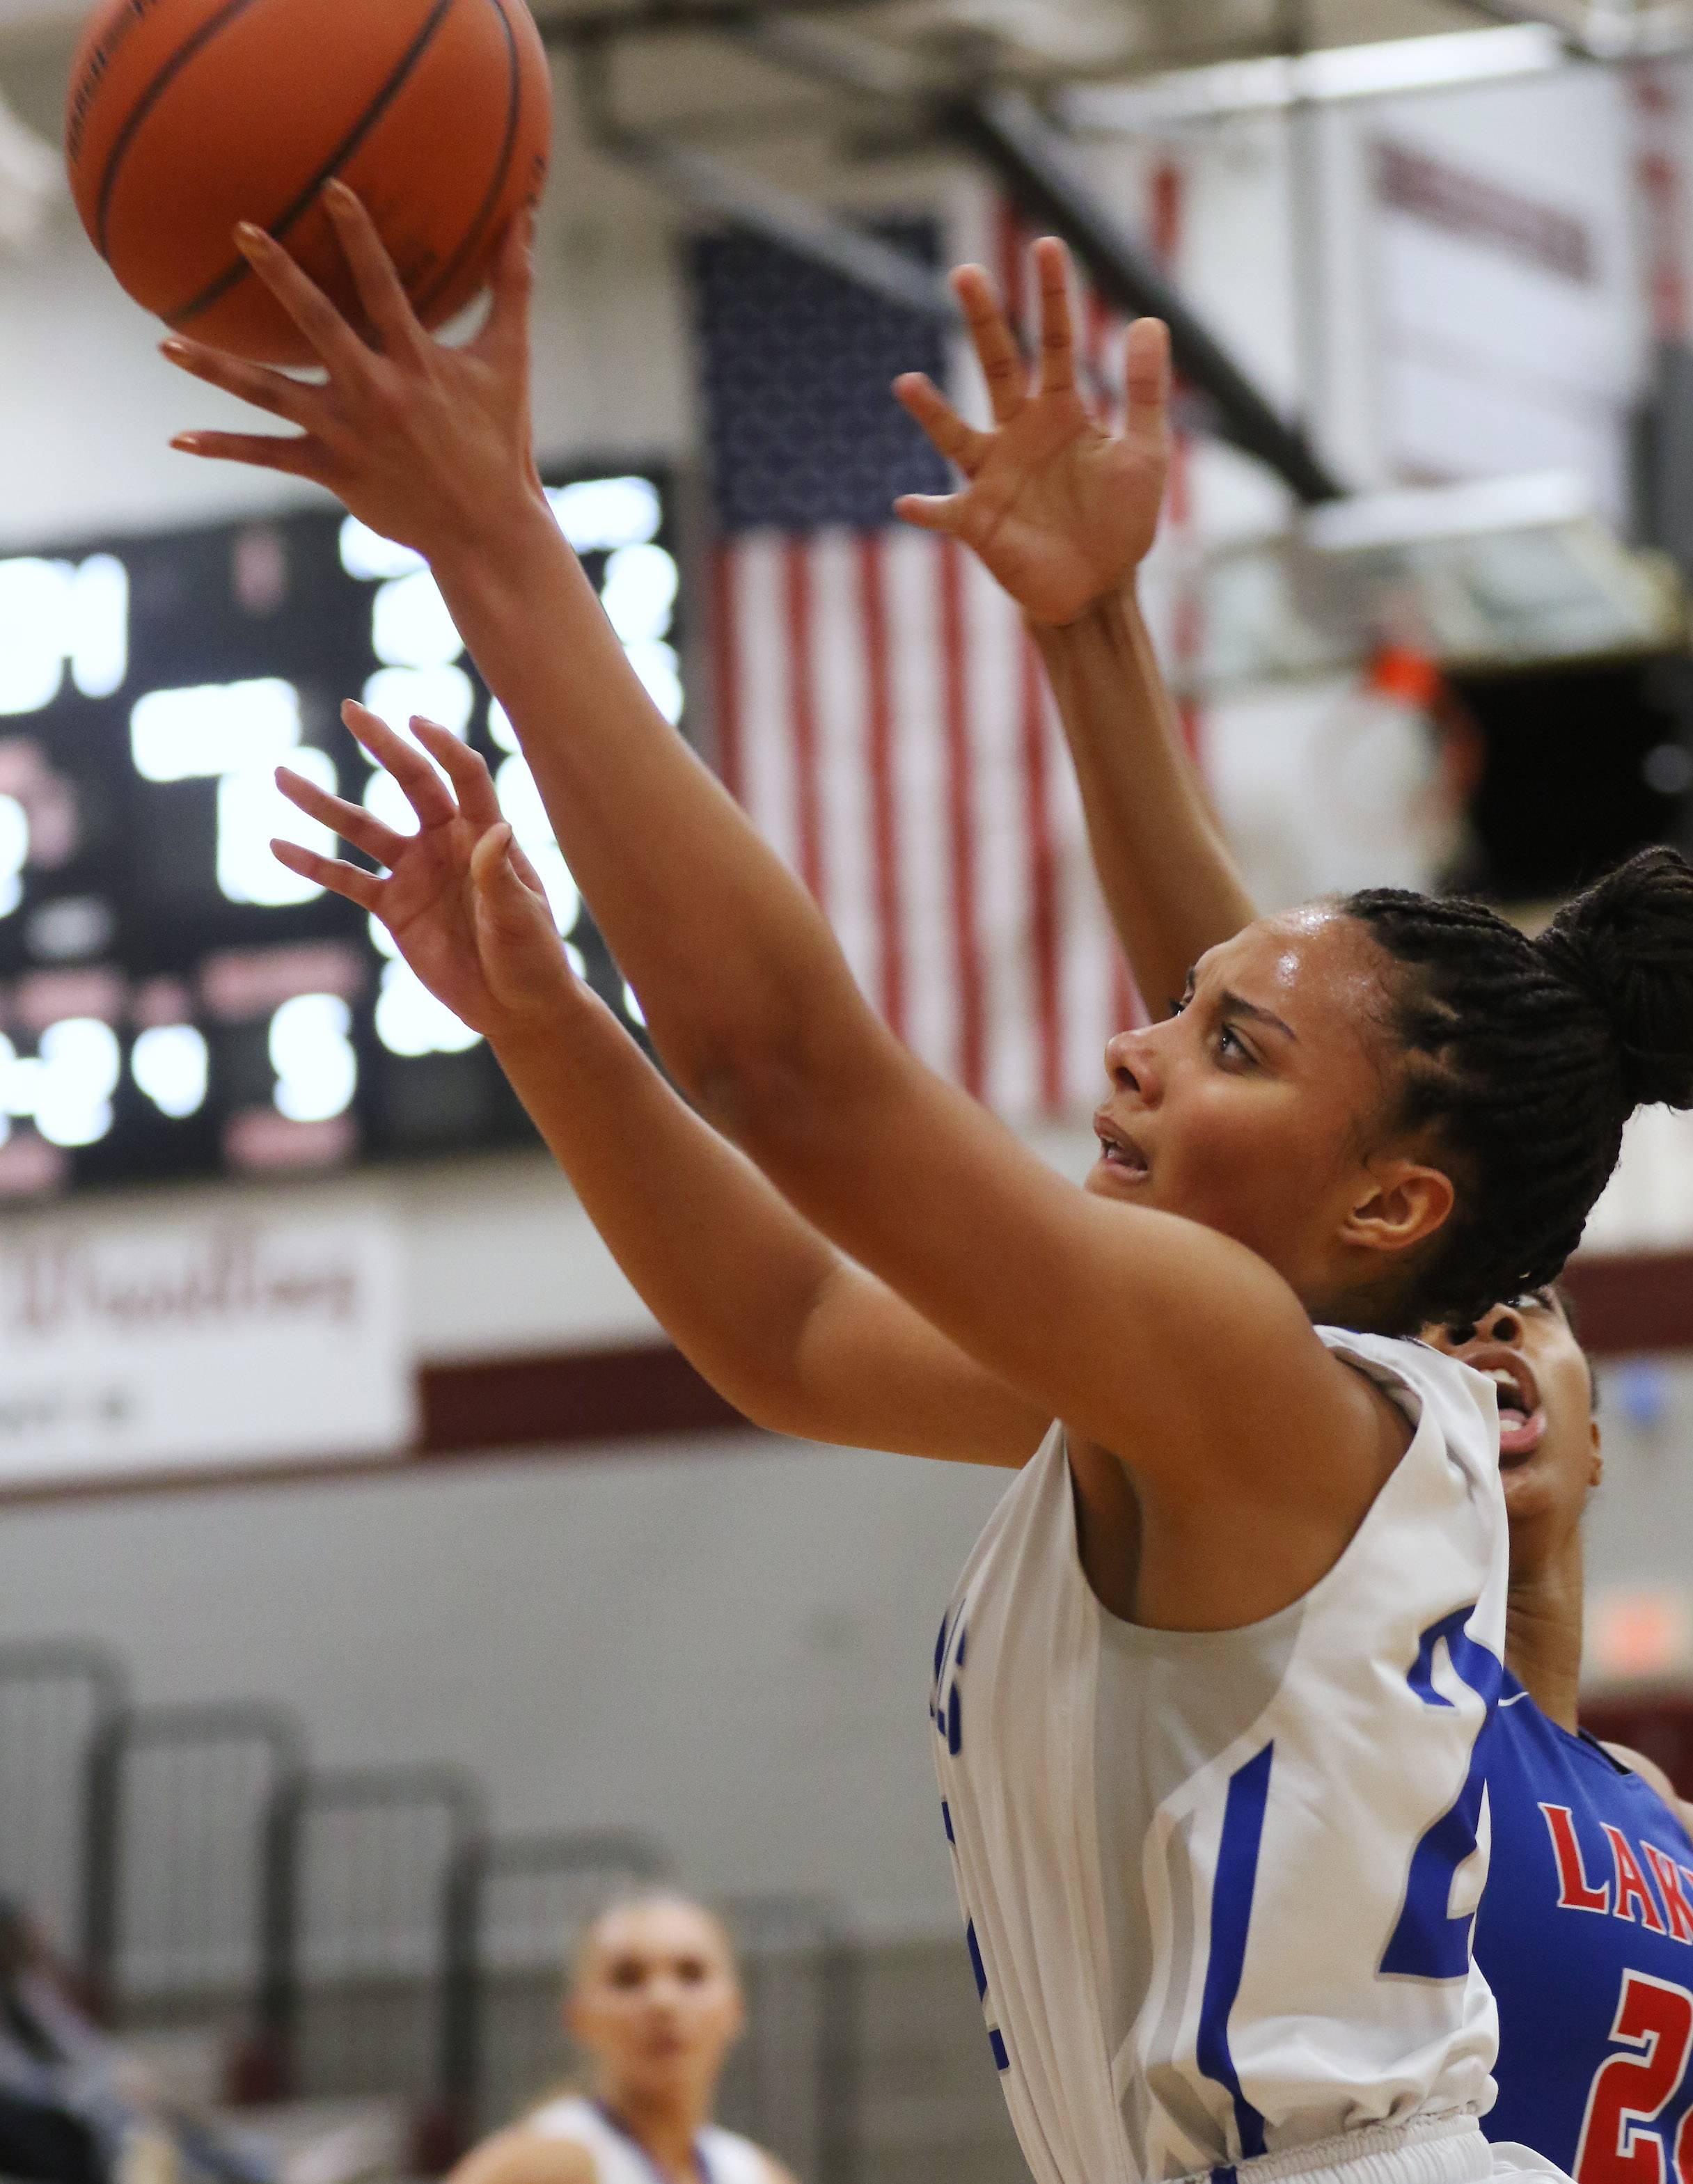 Vernon Hills center Kayla Caudle goes up for a layup during regional final action against Lakes at Antioch last season. Caudle has committed to a collegiate basketball future at DePaul.